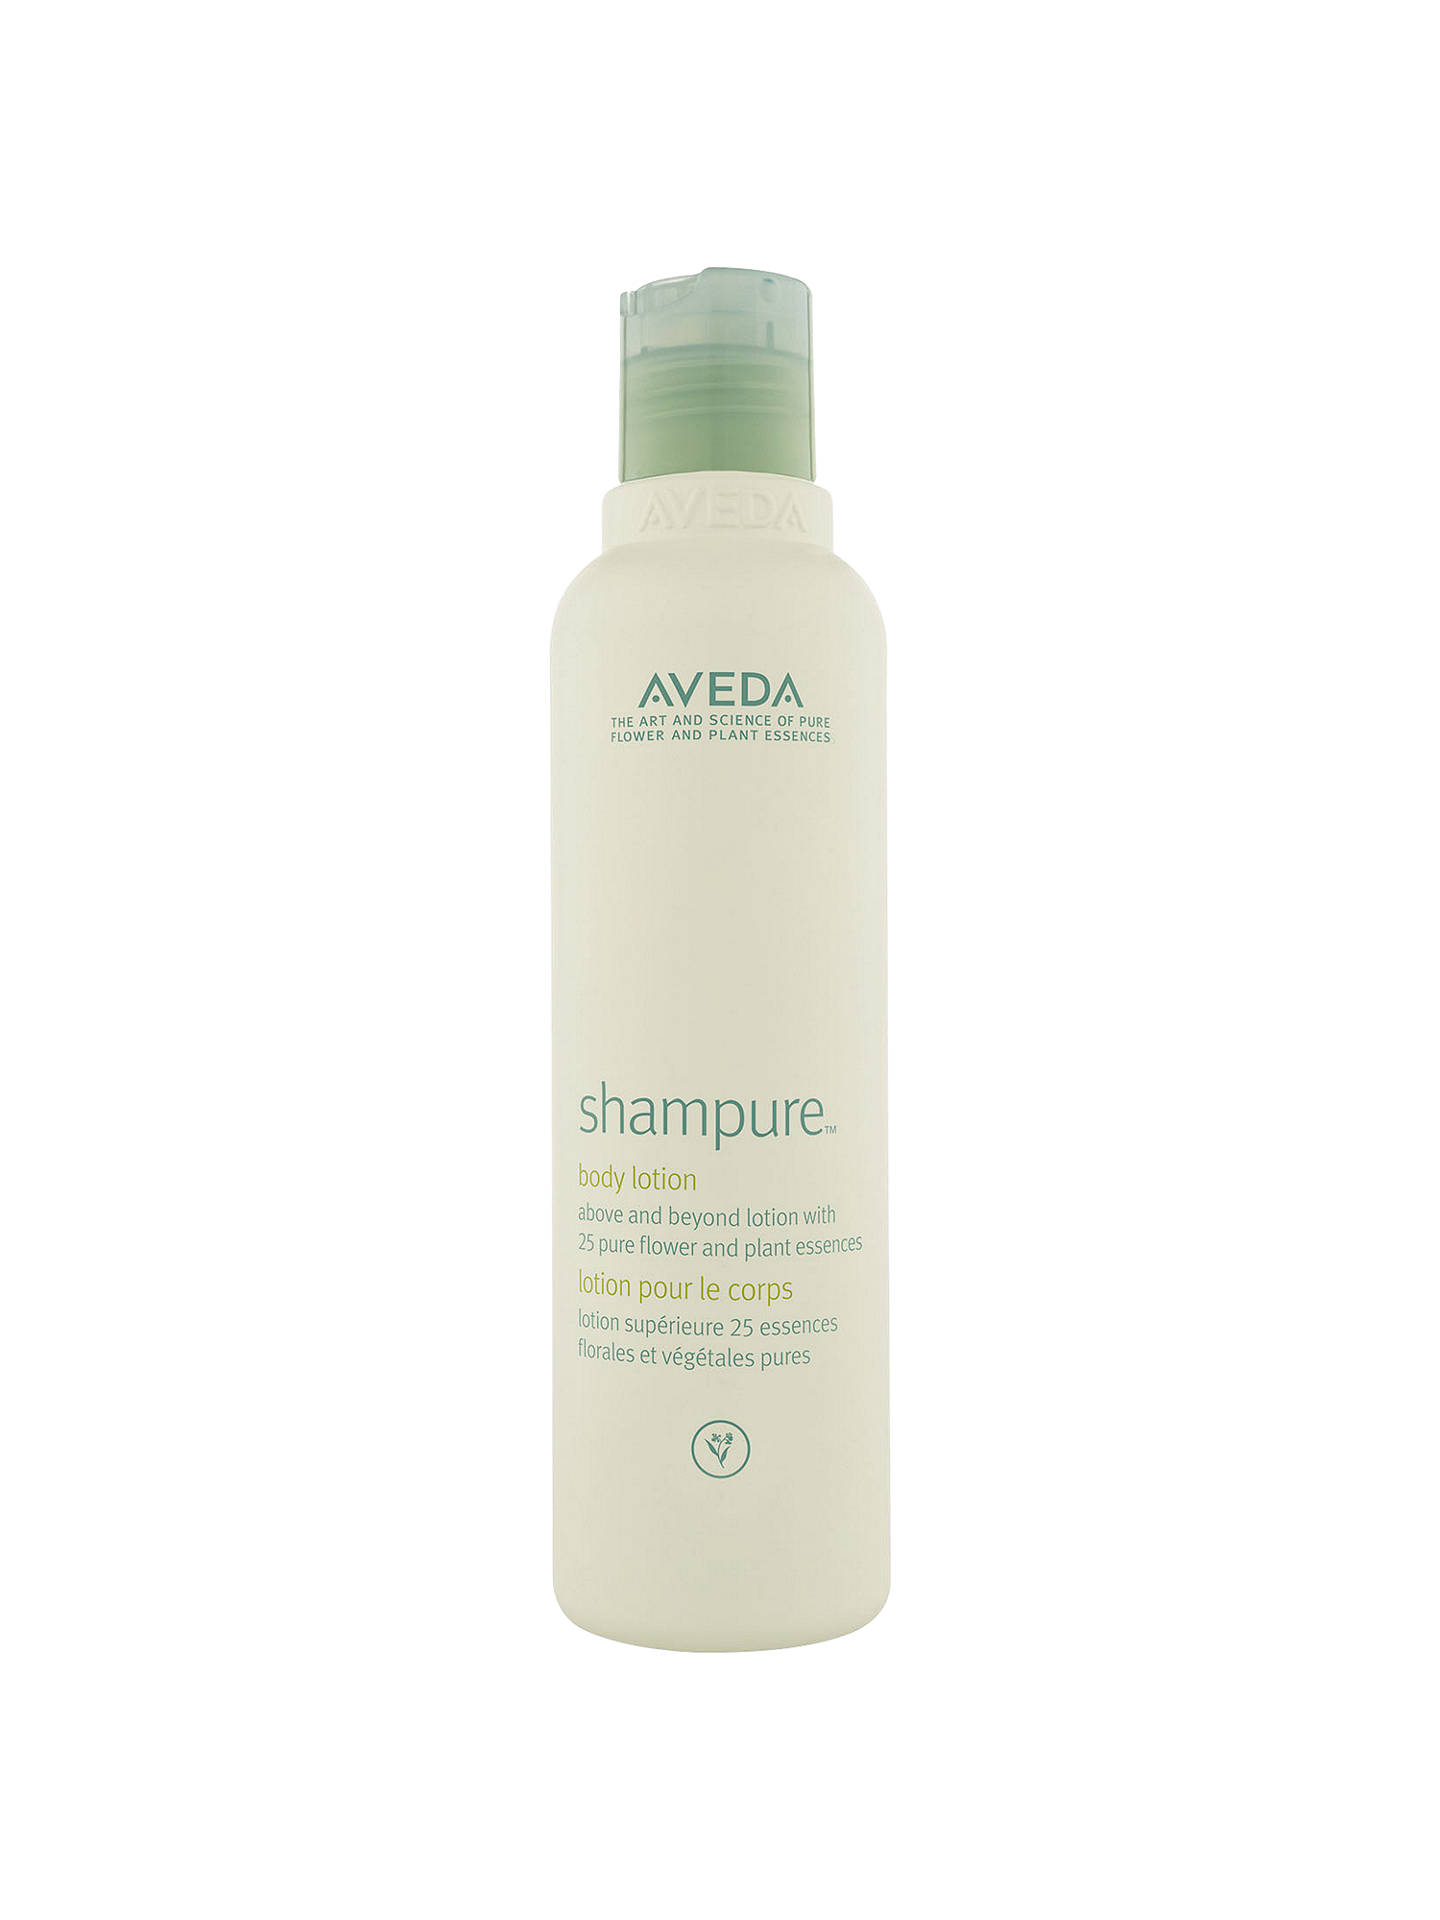 Buy Aveda Shampure Body Lotion, 50ml Online at johnlewis.com